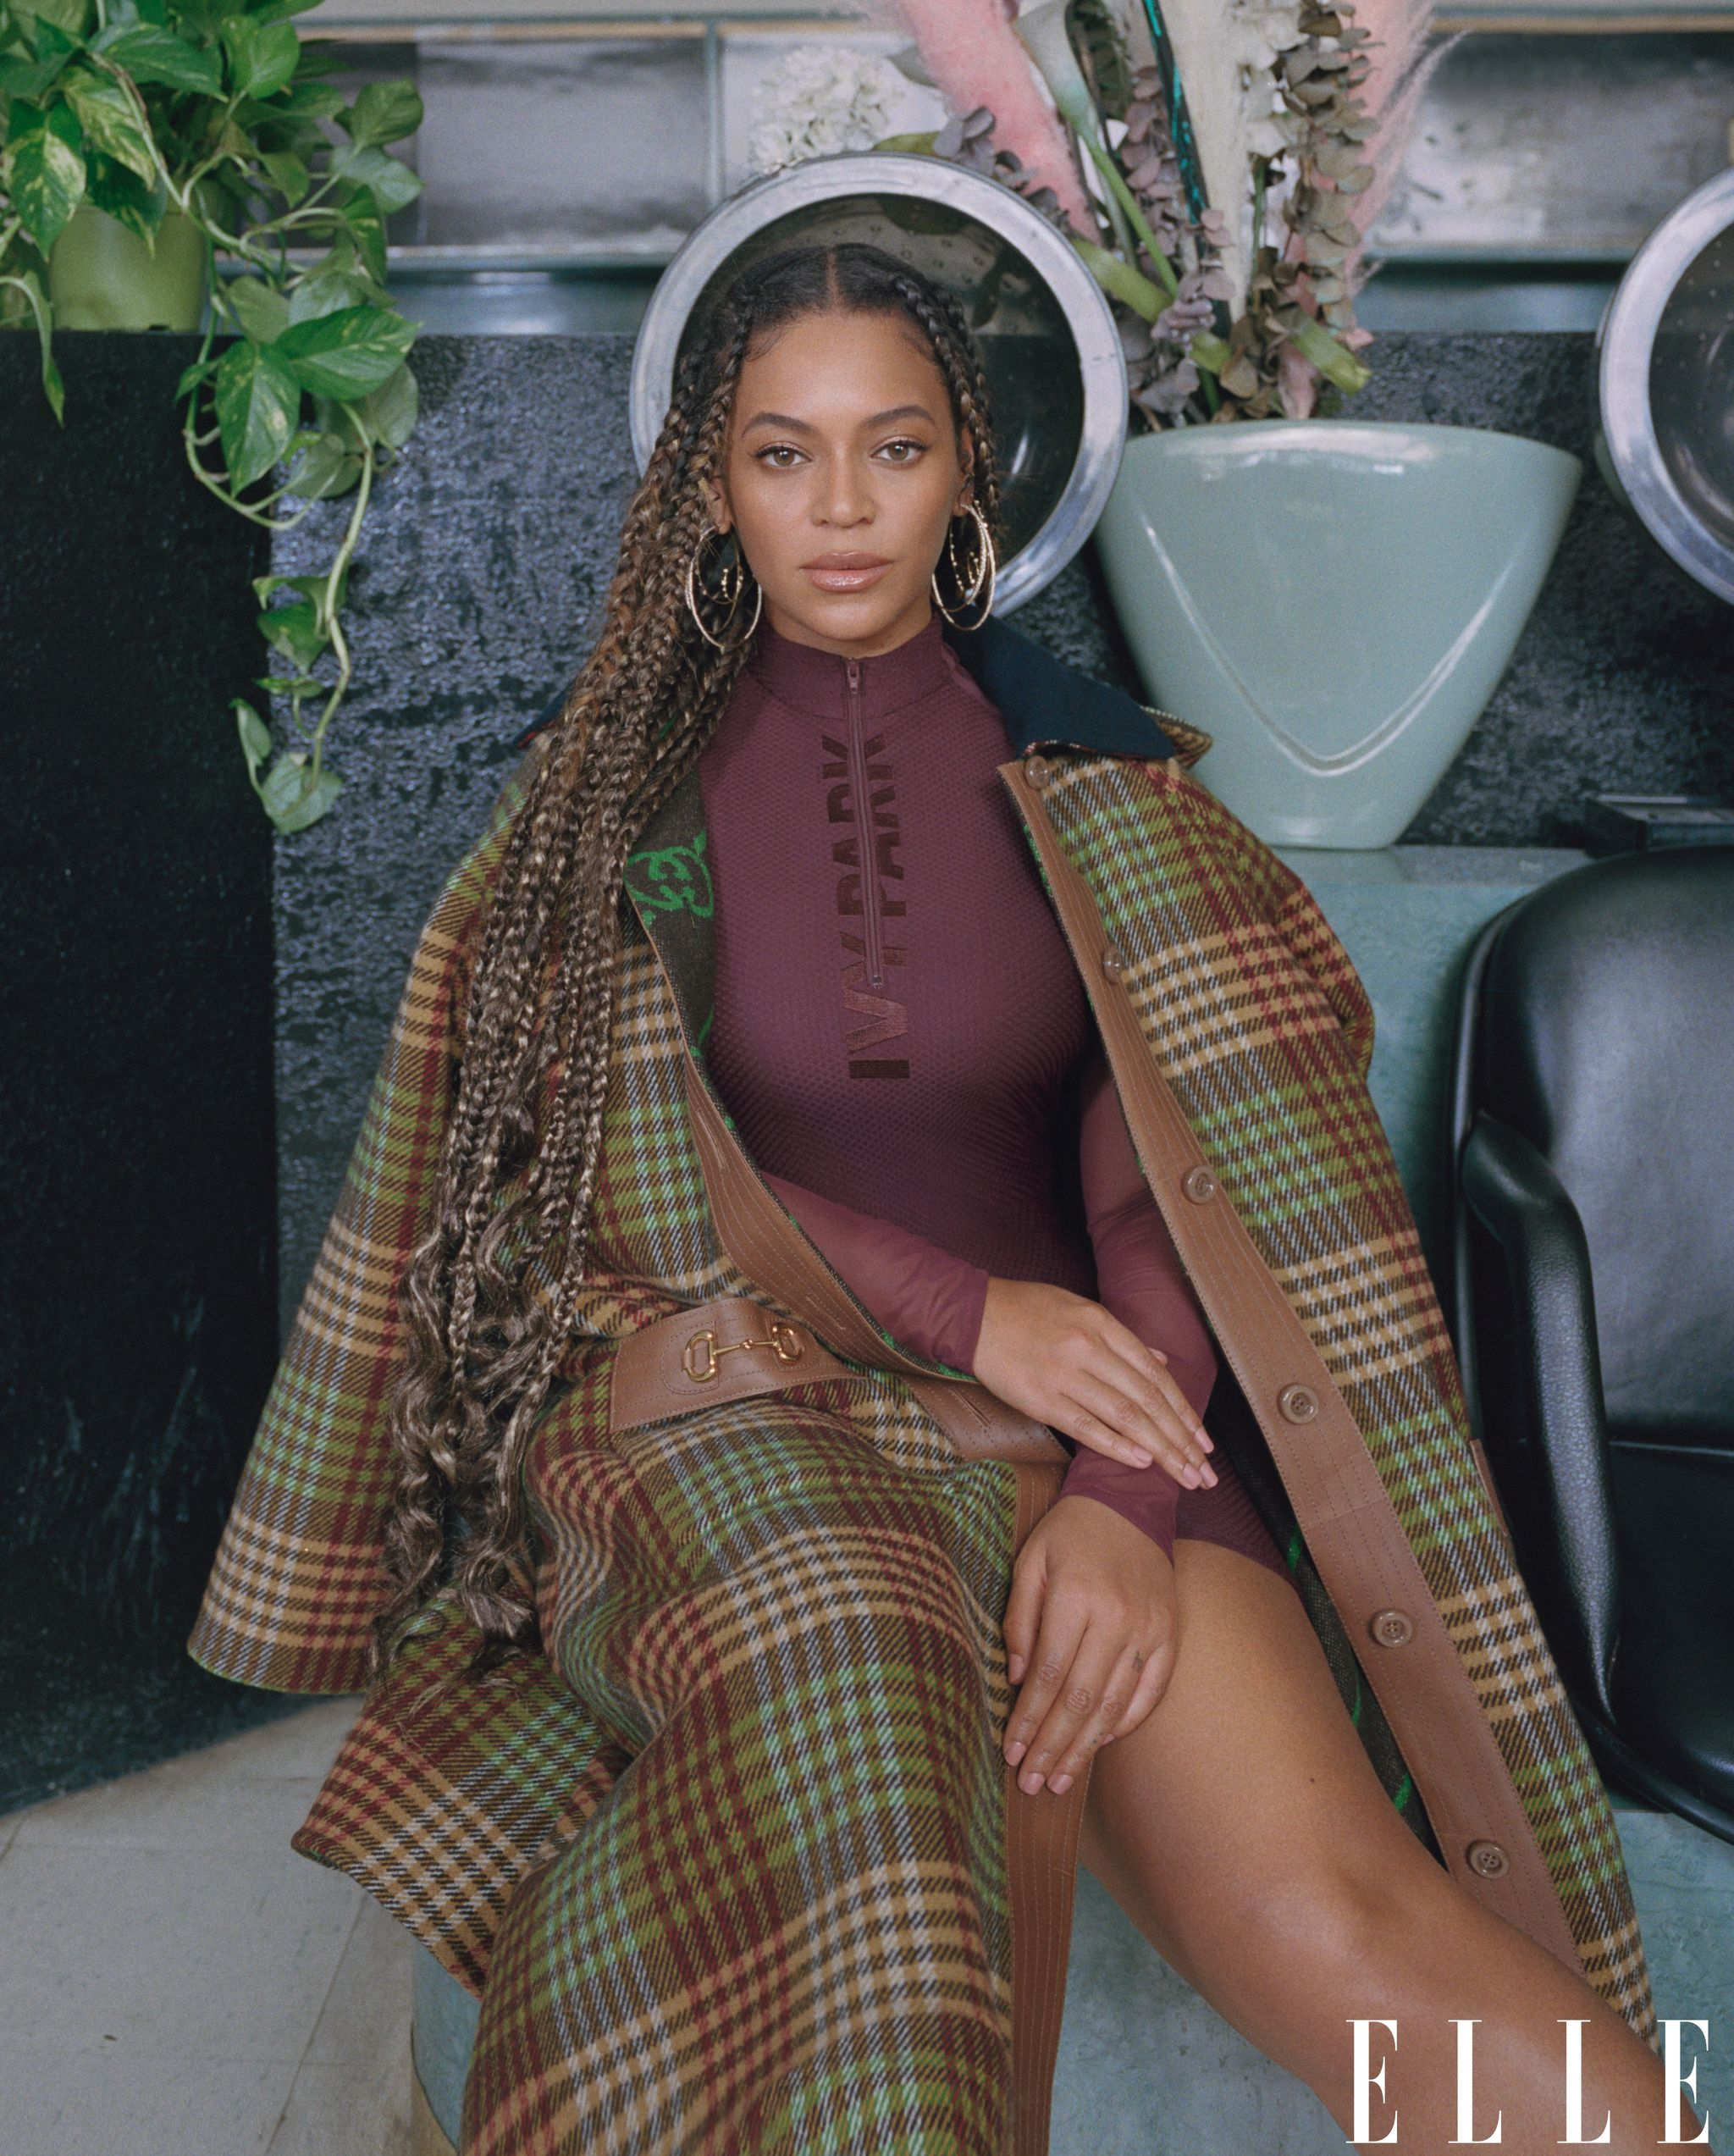 beyonc opens up about her multiple miscarriages